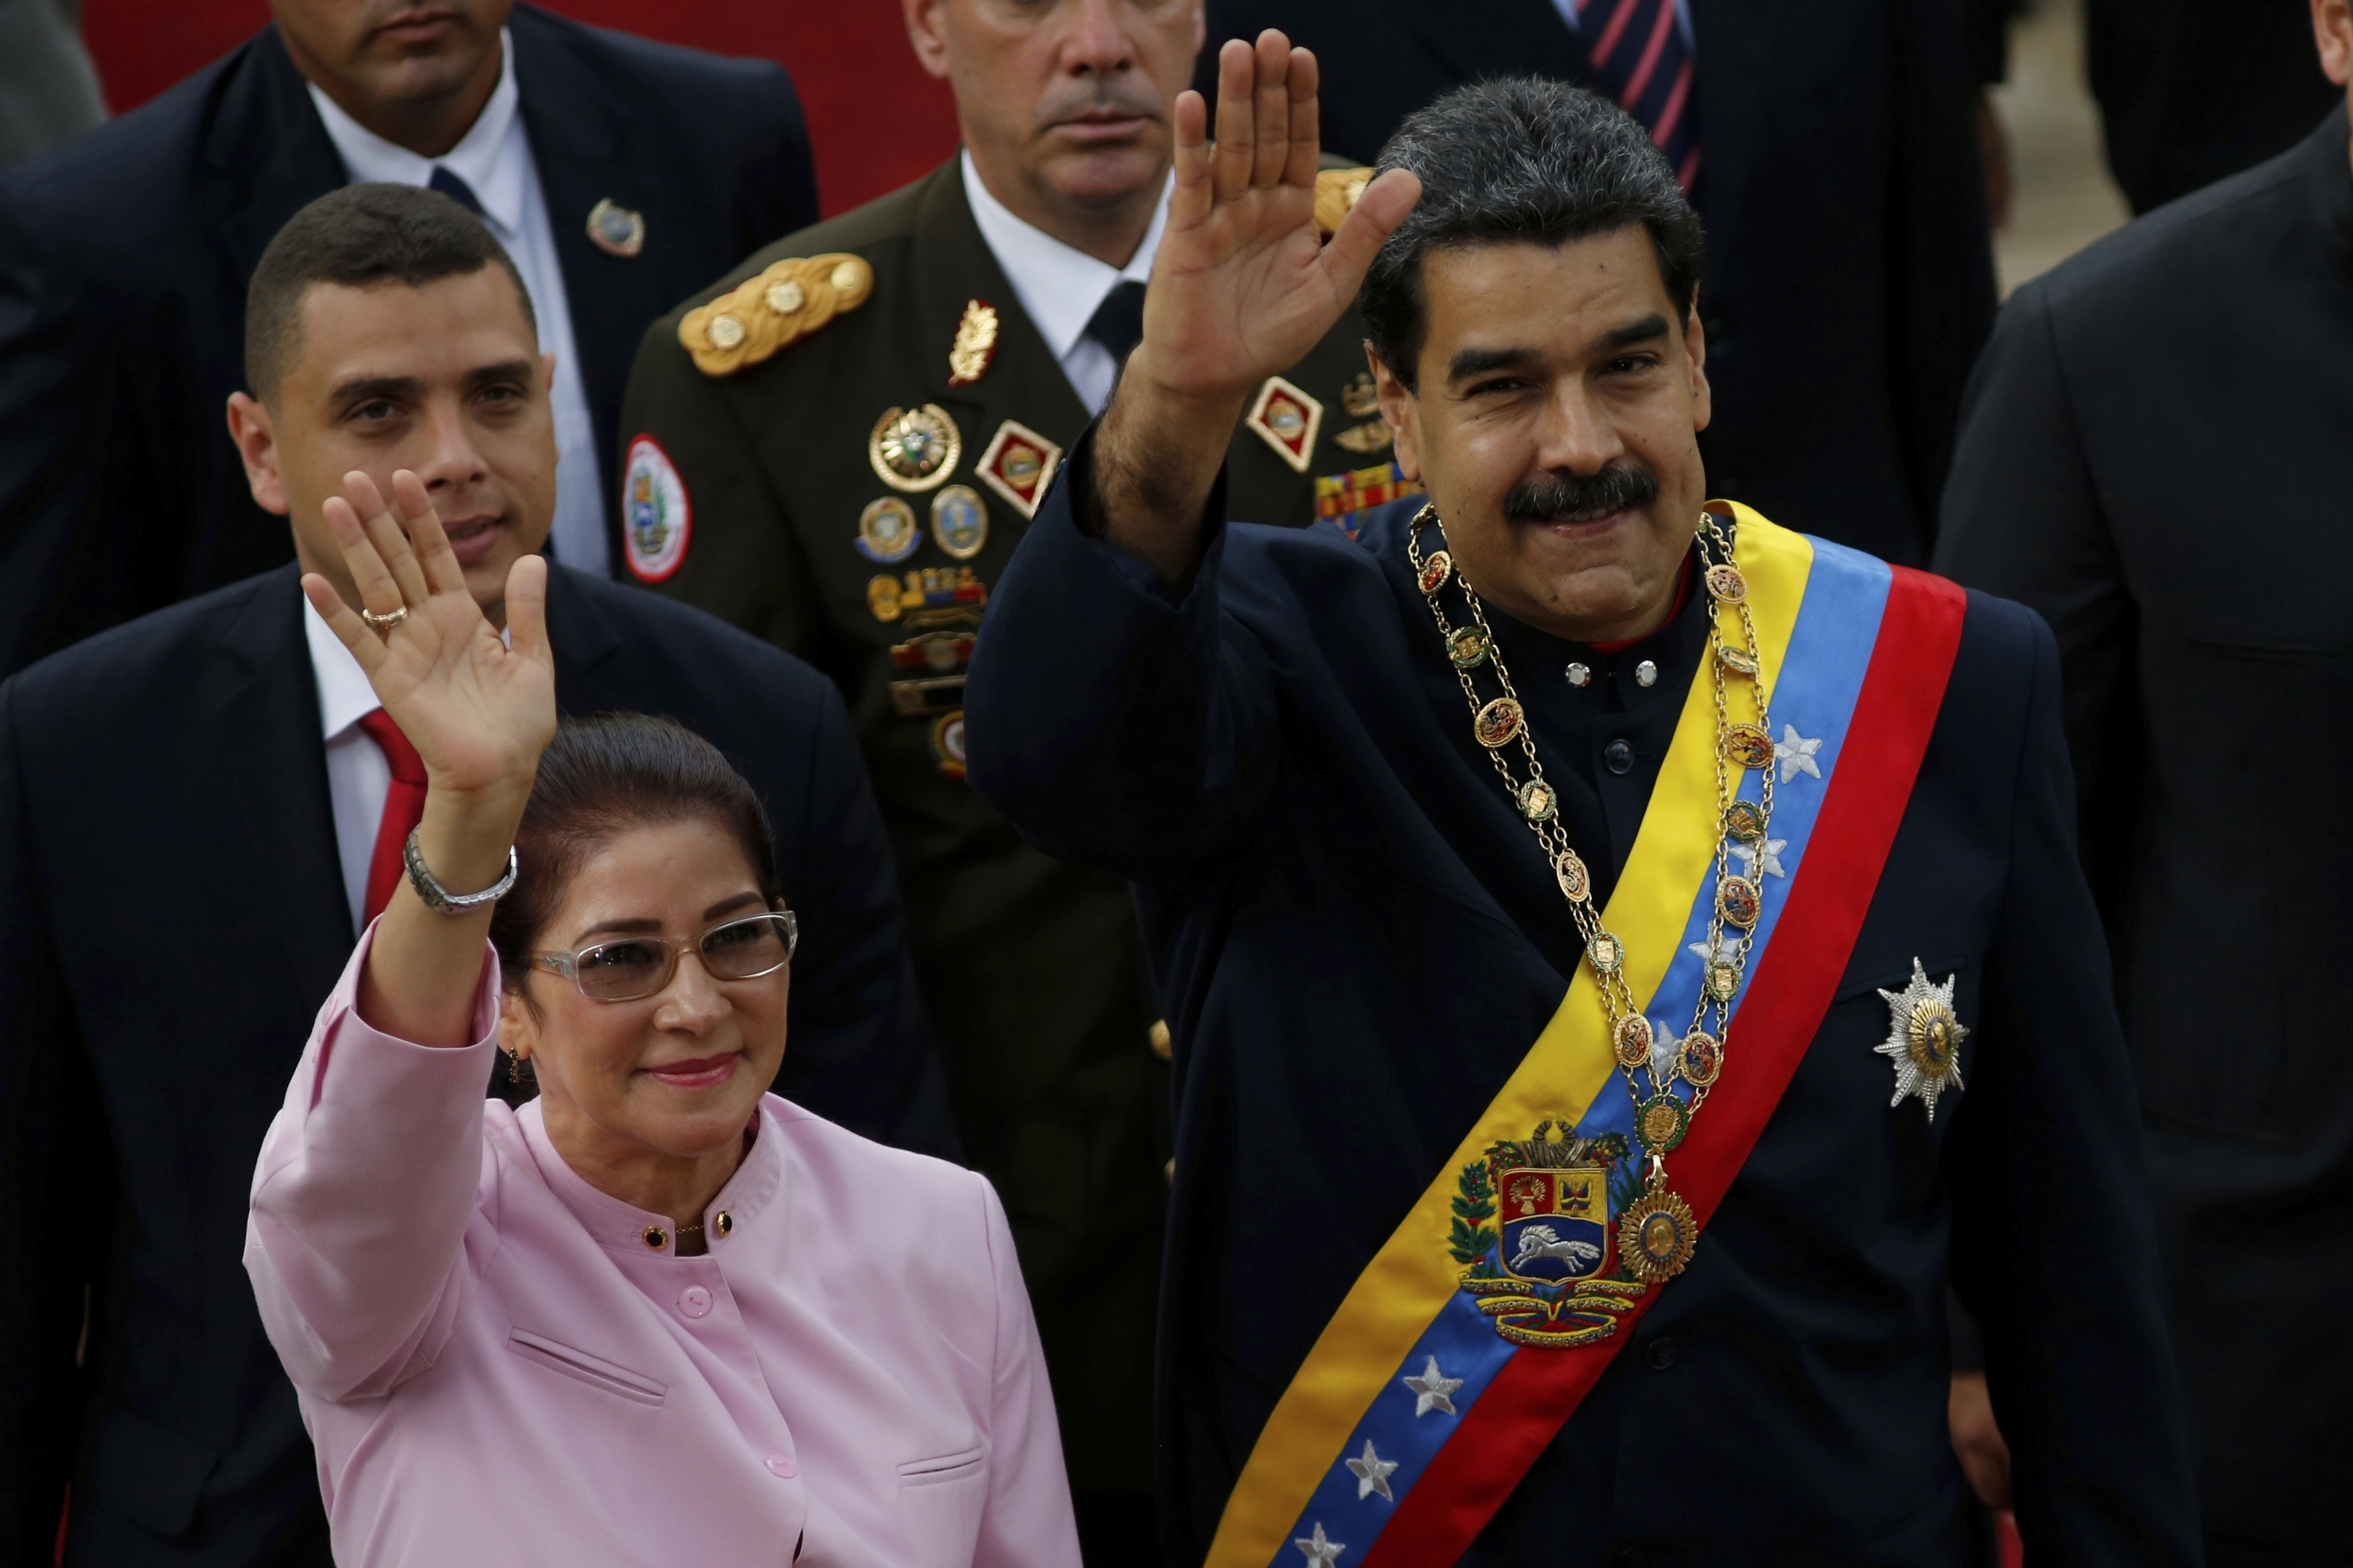 Venezuela's President Nicolas Maduro, right, and his wife Cilia Flores wave as they arrive to the National Assembly building for a session of the Constitutional Assembly in Caracas, Venezuela, Aug. 10, 2017.